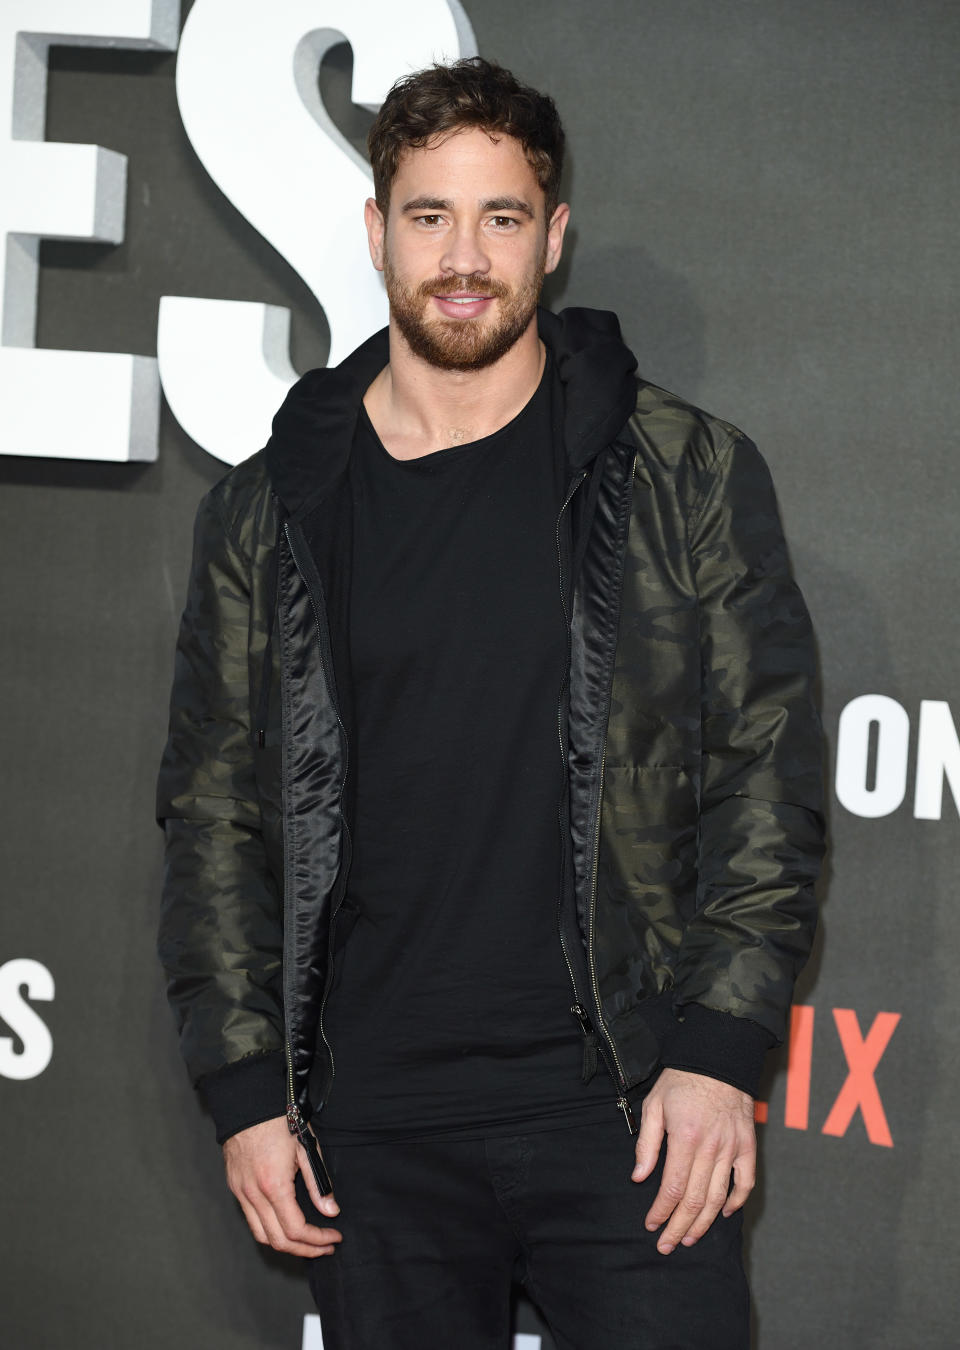 LONDON, ENGLAND - MARCH 15:  Danny Cipriani attends 'The Defiant Ones' special screening at the Ritzy Picturehouse on March 15, 2018 in London, United Kingdom.  (Photo by Karwai Tang/WireImage)